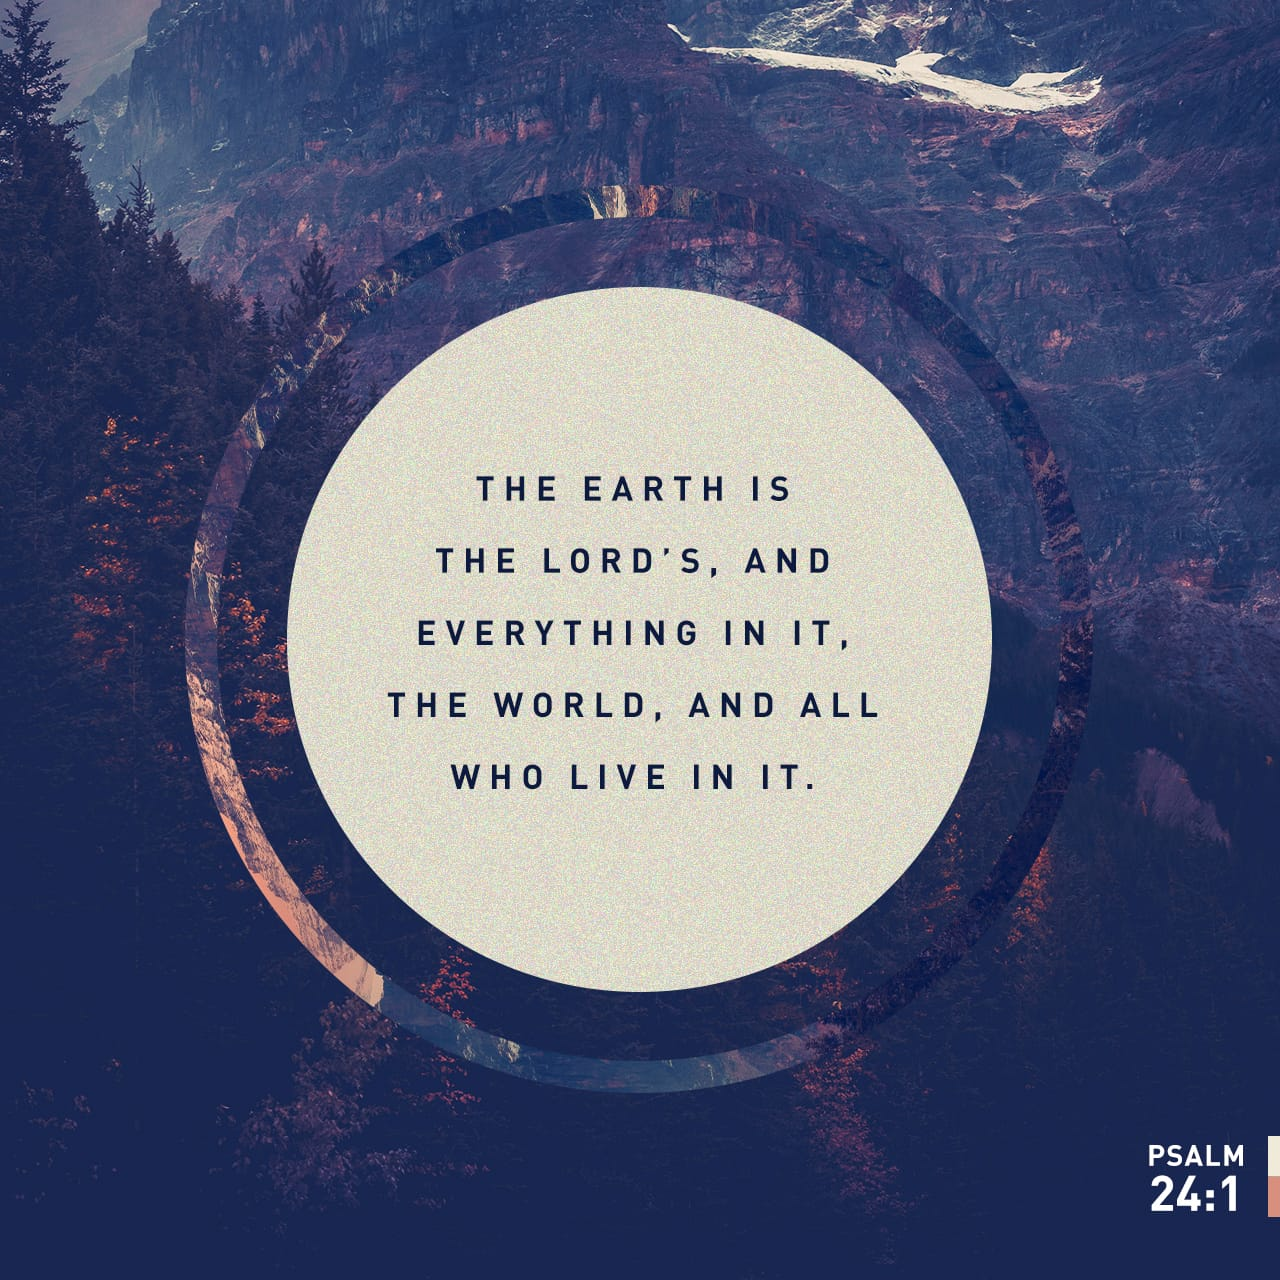 Psalm 24:1-2 The earth is the LORD's, and everything in it